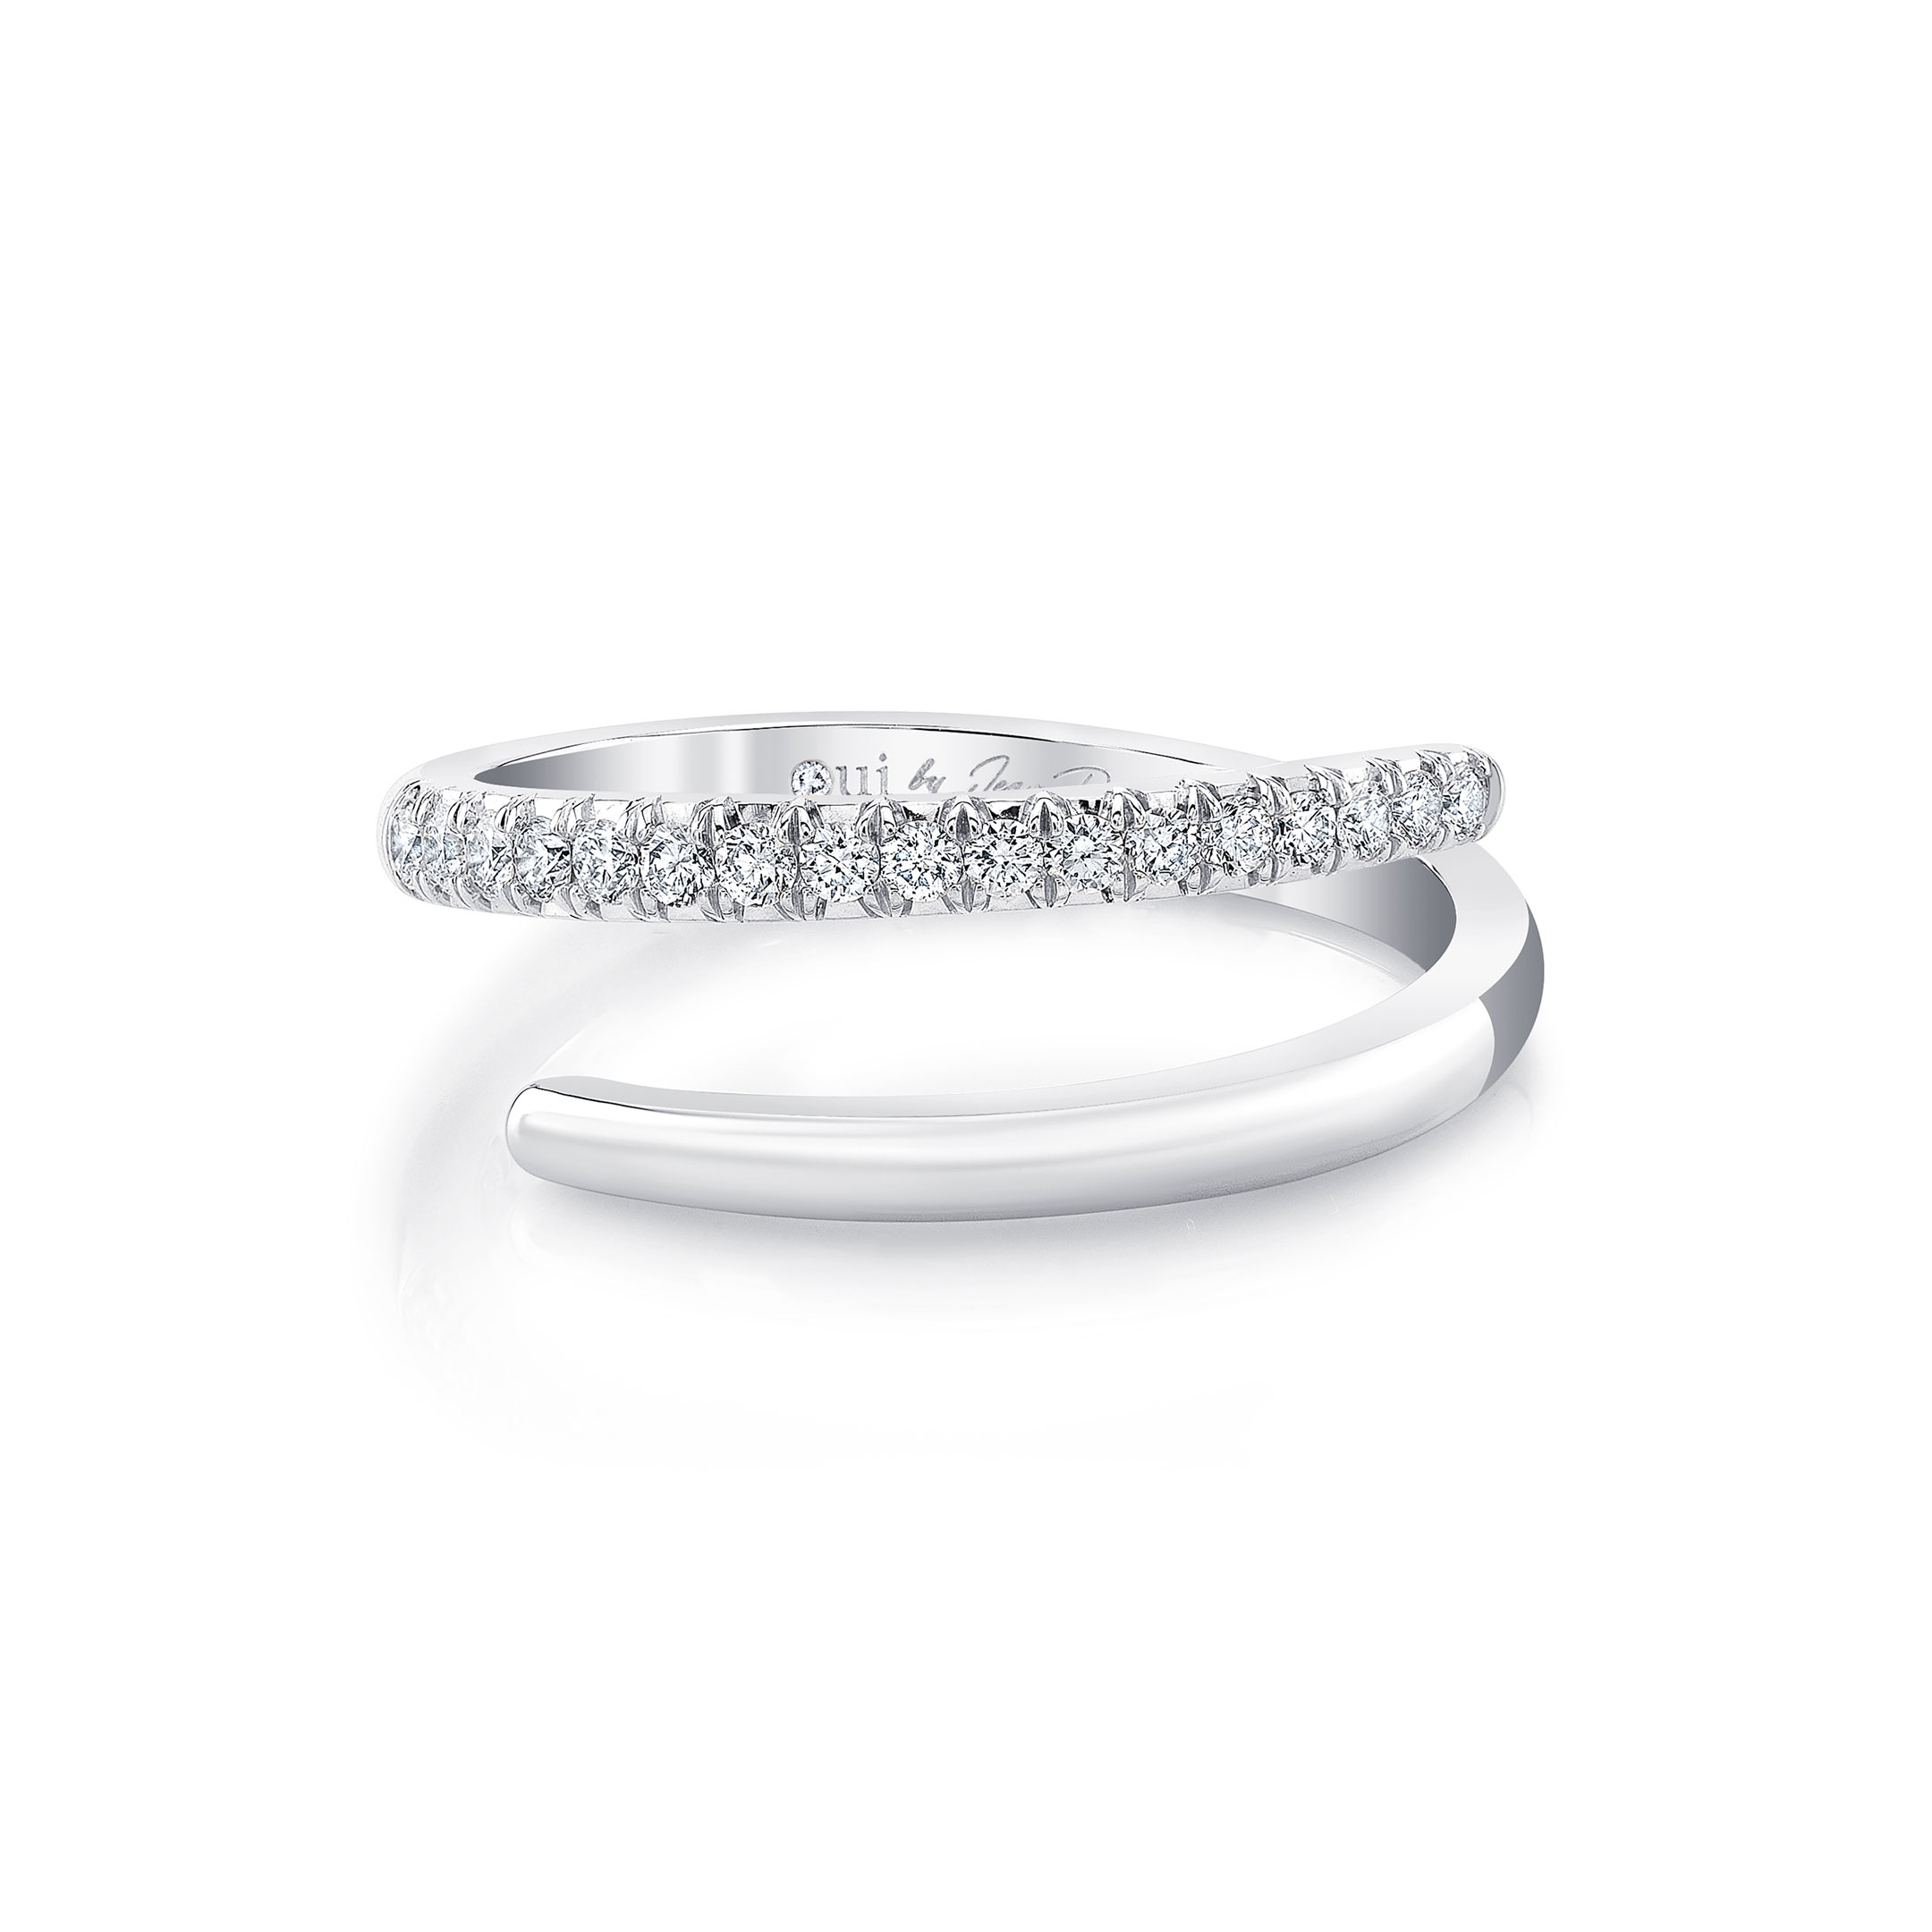 Half Diamond Pavé Wrap Ring in 18k White Gold Front View by Oui by Jean Dousset